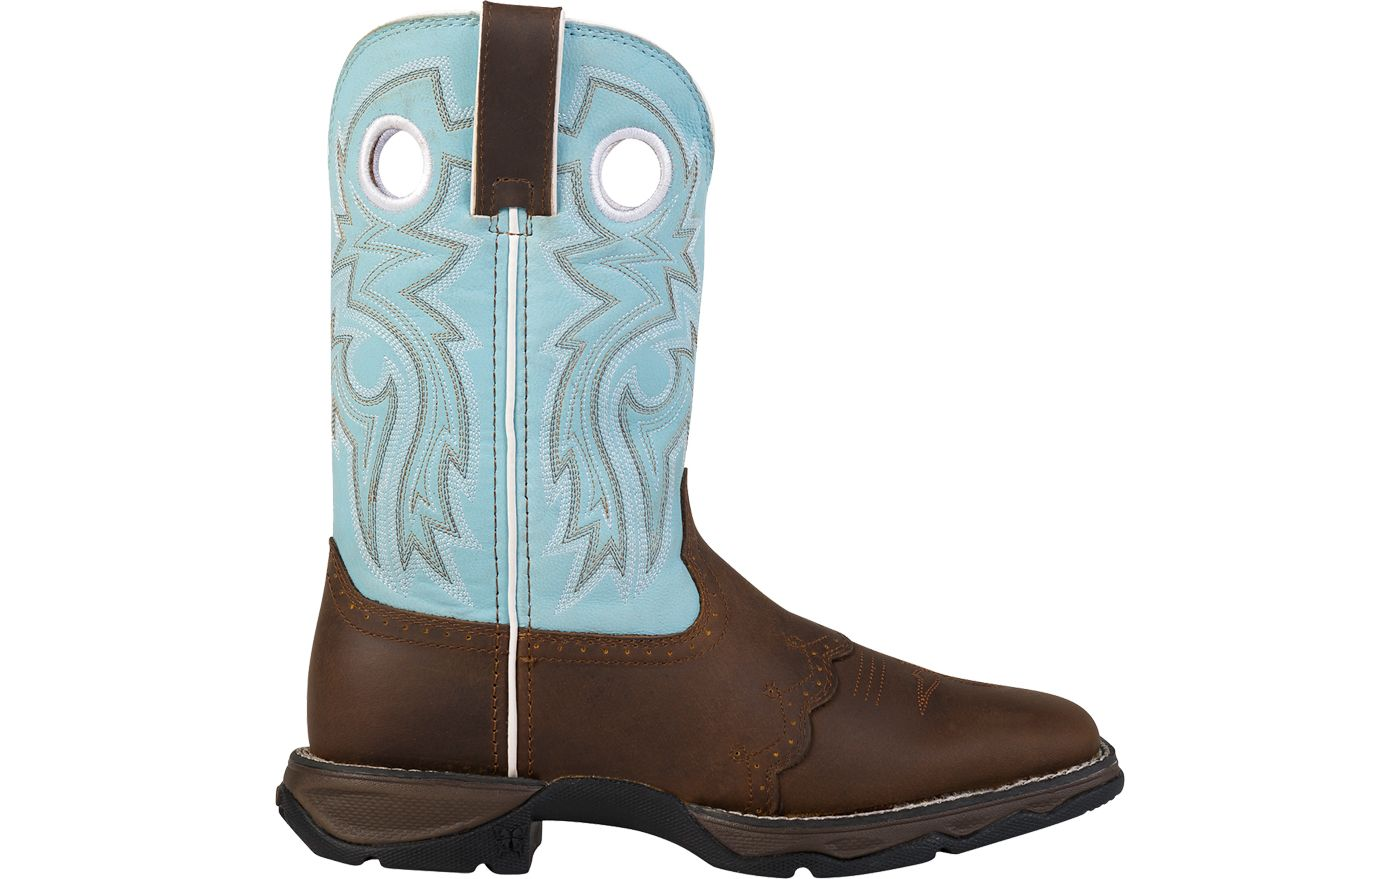 Durango Women's Lady Rebel Powder n' Lace Western Work Boots